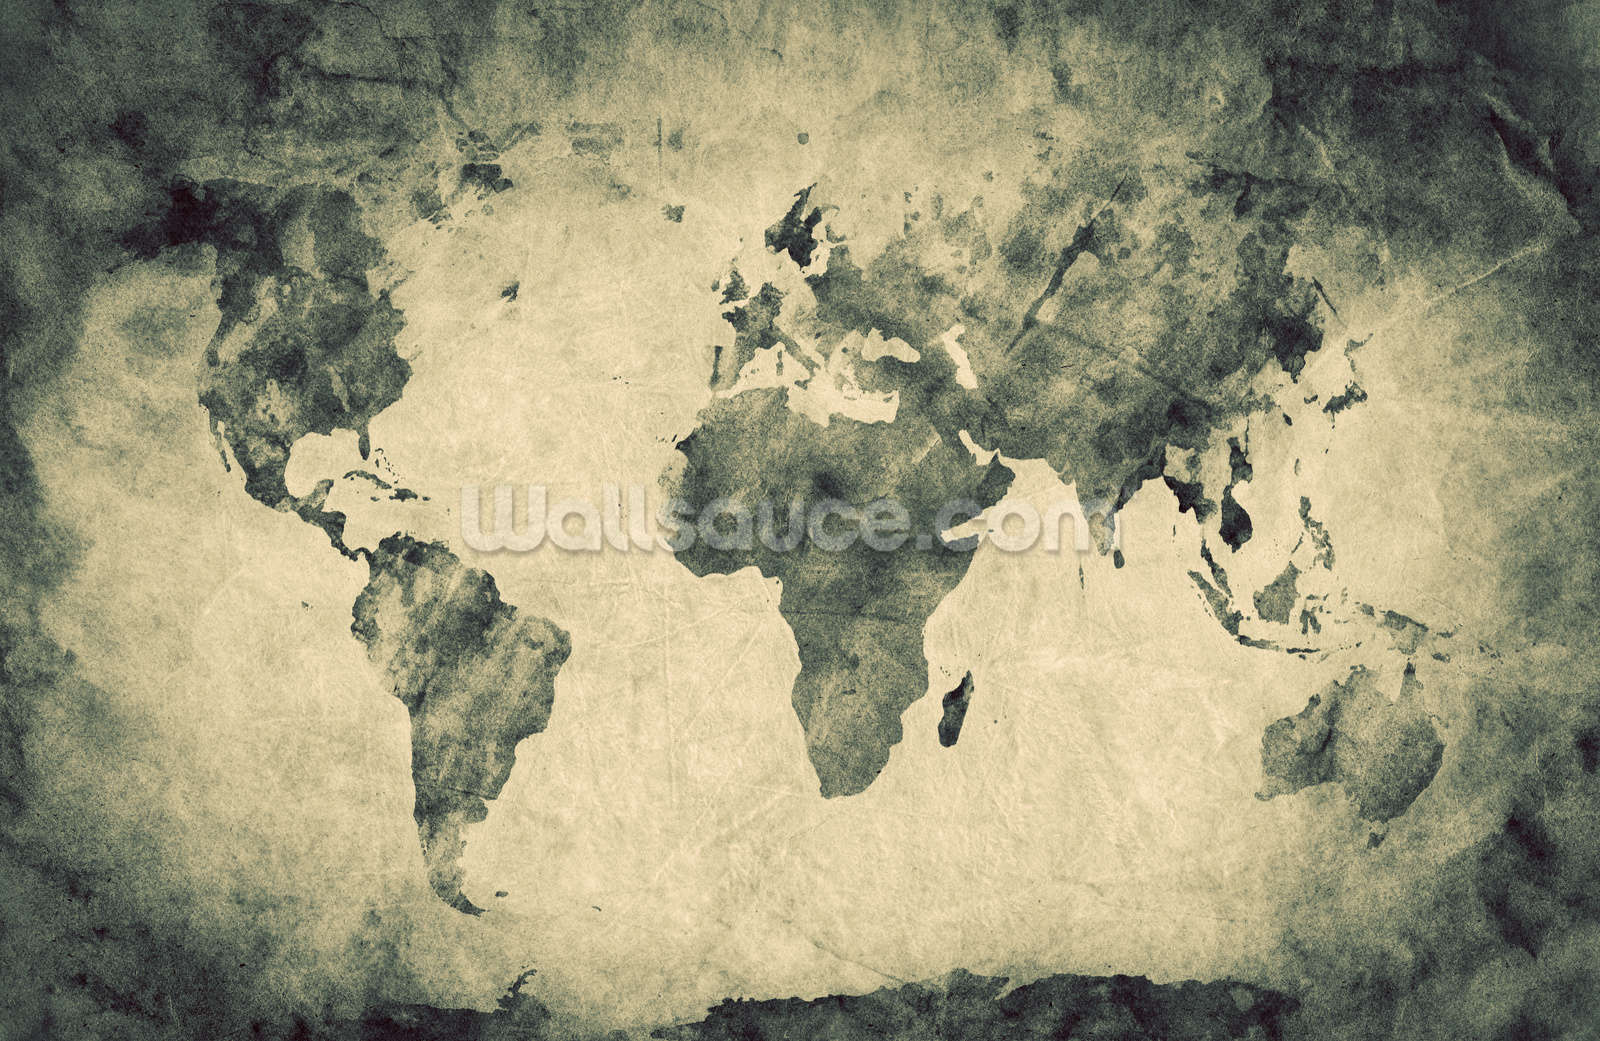 Ancient world map sketch wallpaper wall mural wallsauce denmark ancient world map sketch wall mural photo wallpaper gumiabroncs Image collections